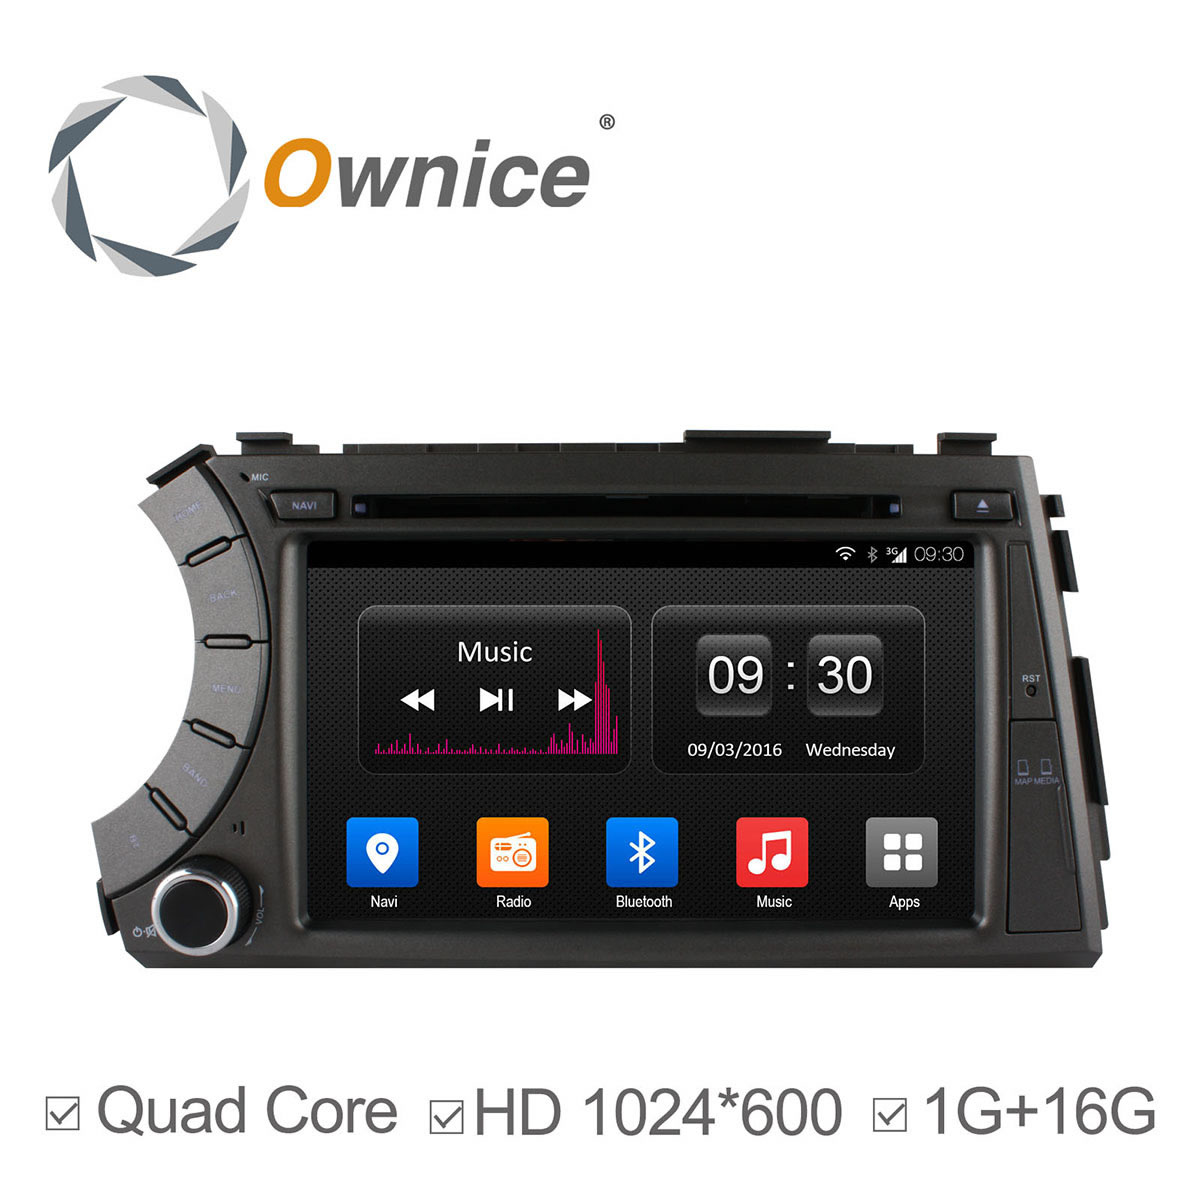 1024X600 Quad Core Android4.4 Car DVD For SsangYong Kyron Actyon 2005-2013 GPS Radio Stereo wifi 3G BT 16G ROM support DAB+ TPMS(China (Mainland))